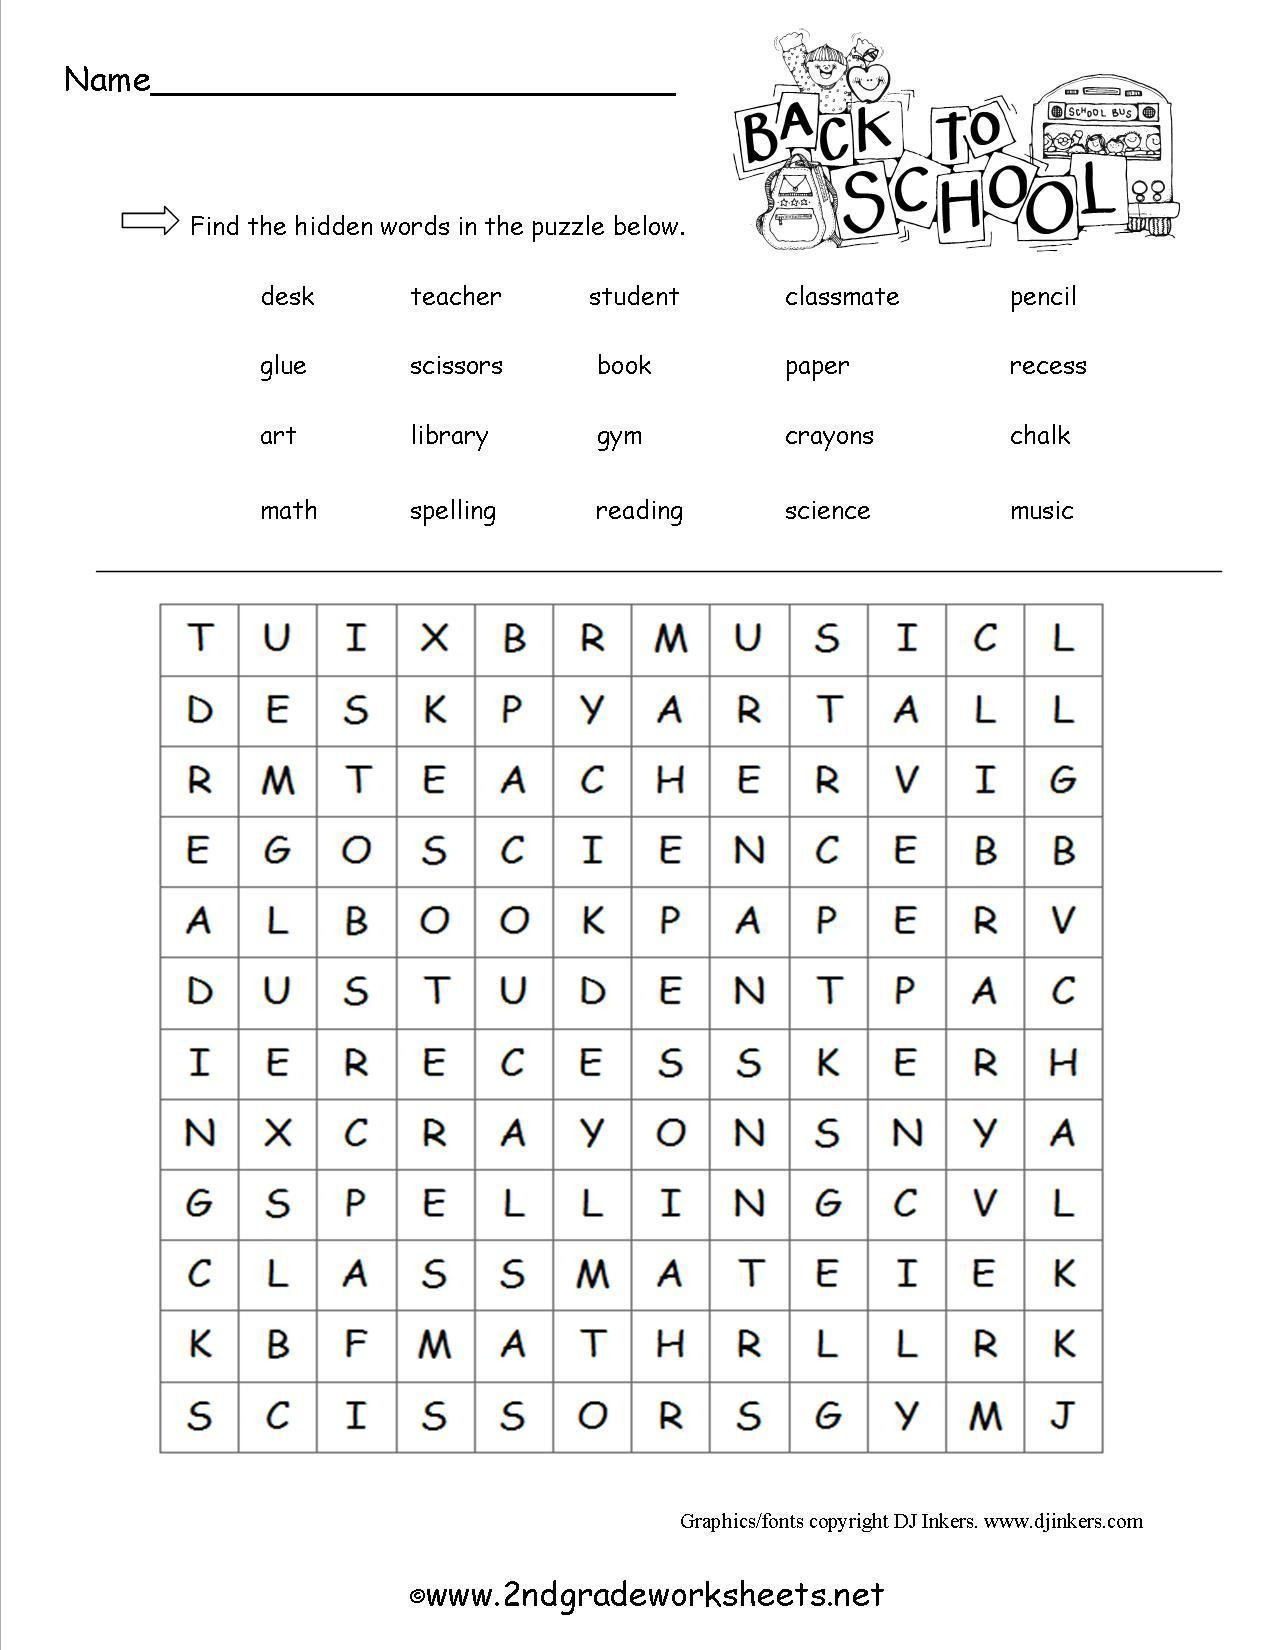 End Of School Worksheets End the School Year Worksheets for 2nd Grade